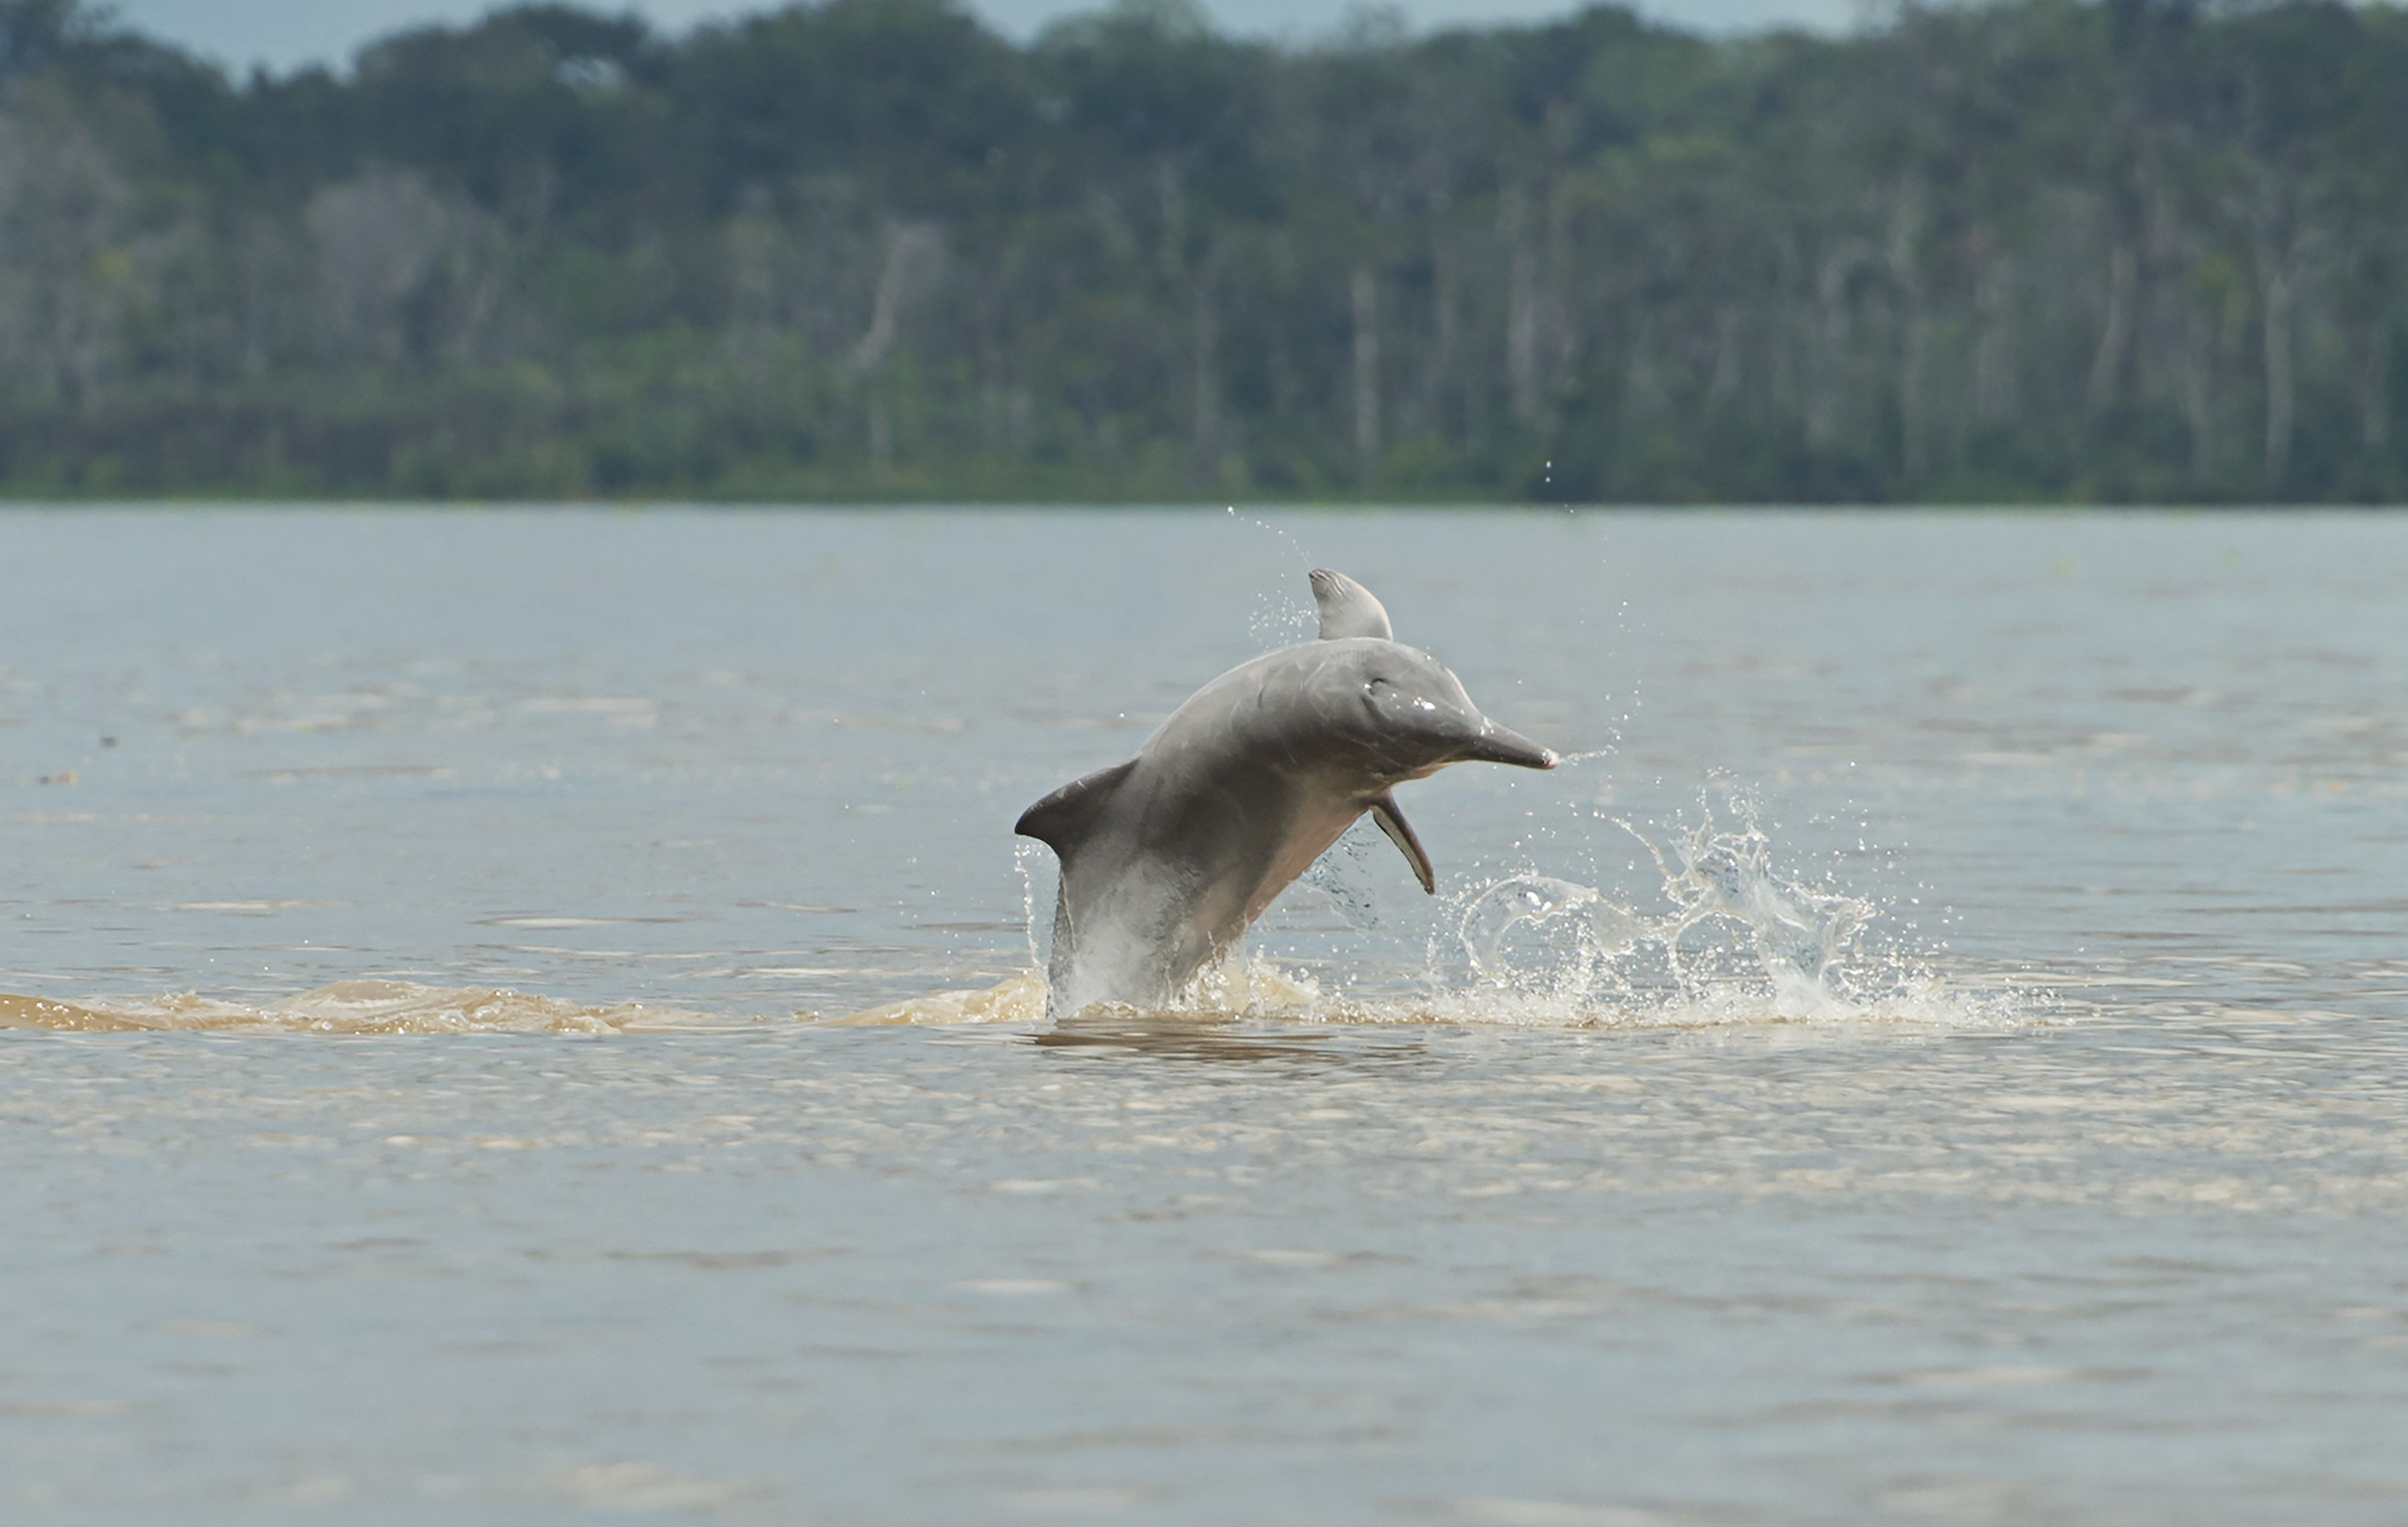 Populations of freshwater dolphins in the Amazon basin are declining at an alarming rate, according to a new study.